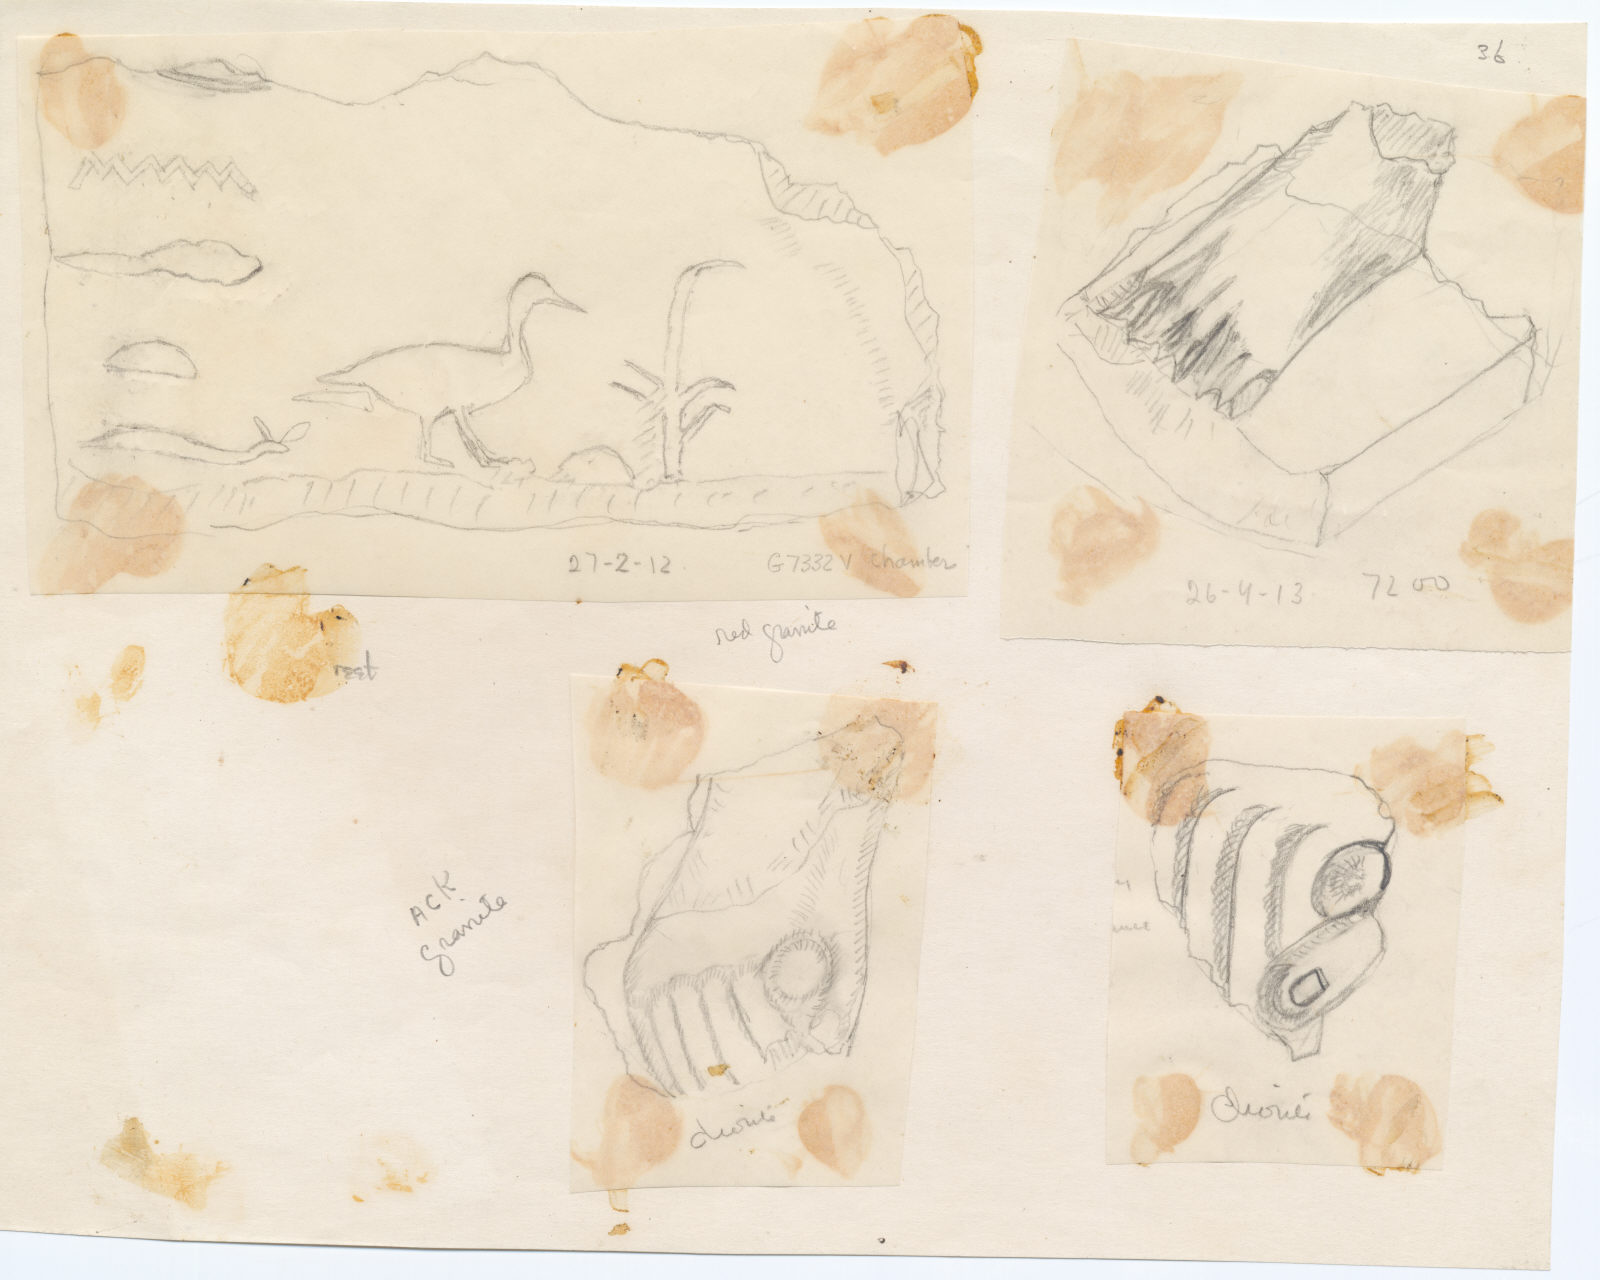 Drawings: Fragments of statues from G 7332 B and V, Street G 7200